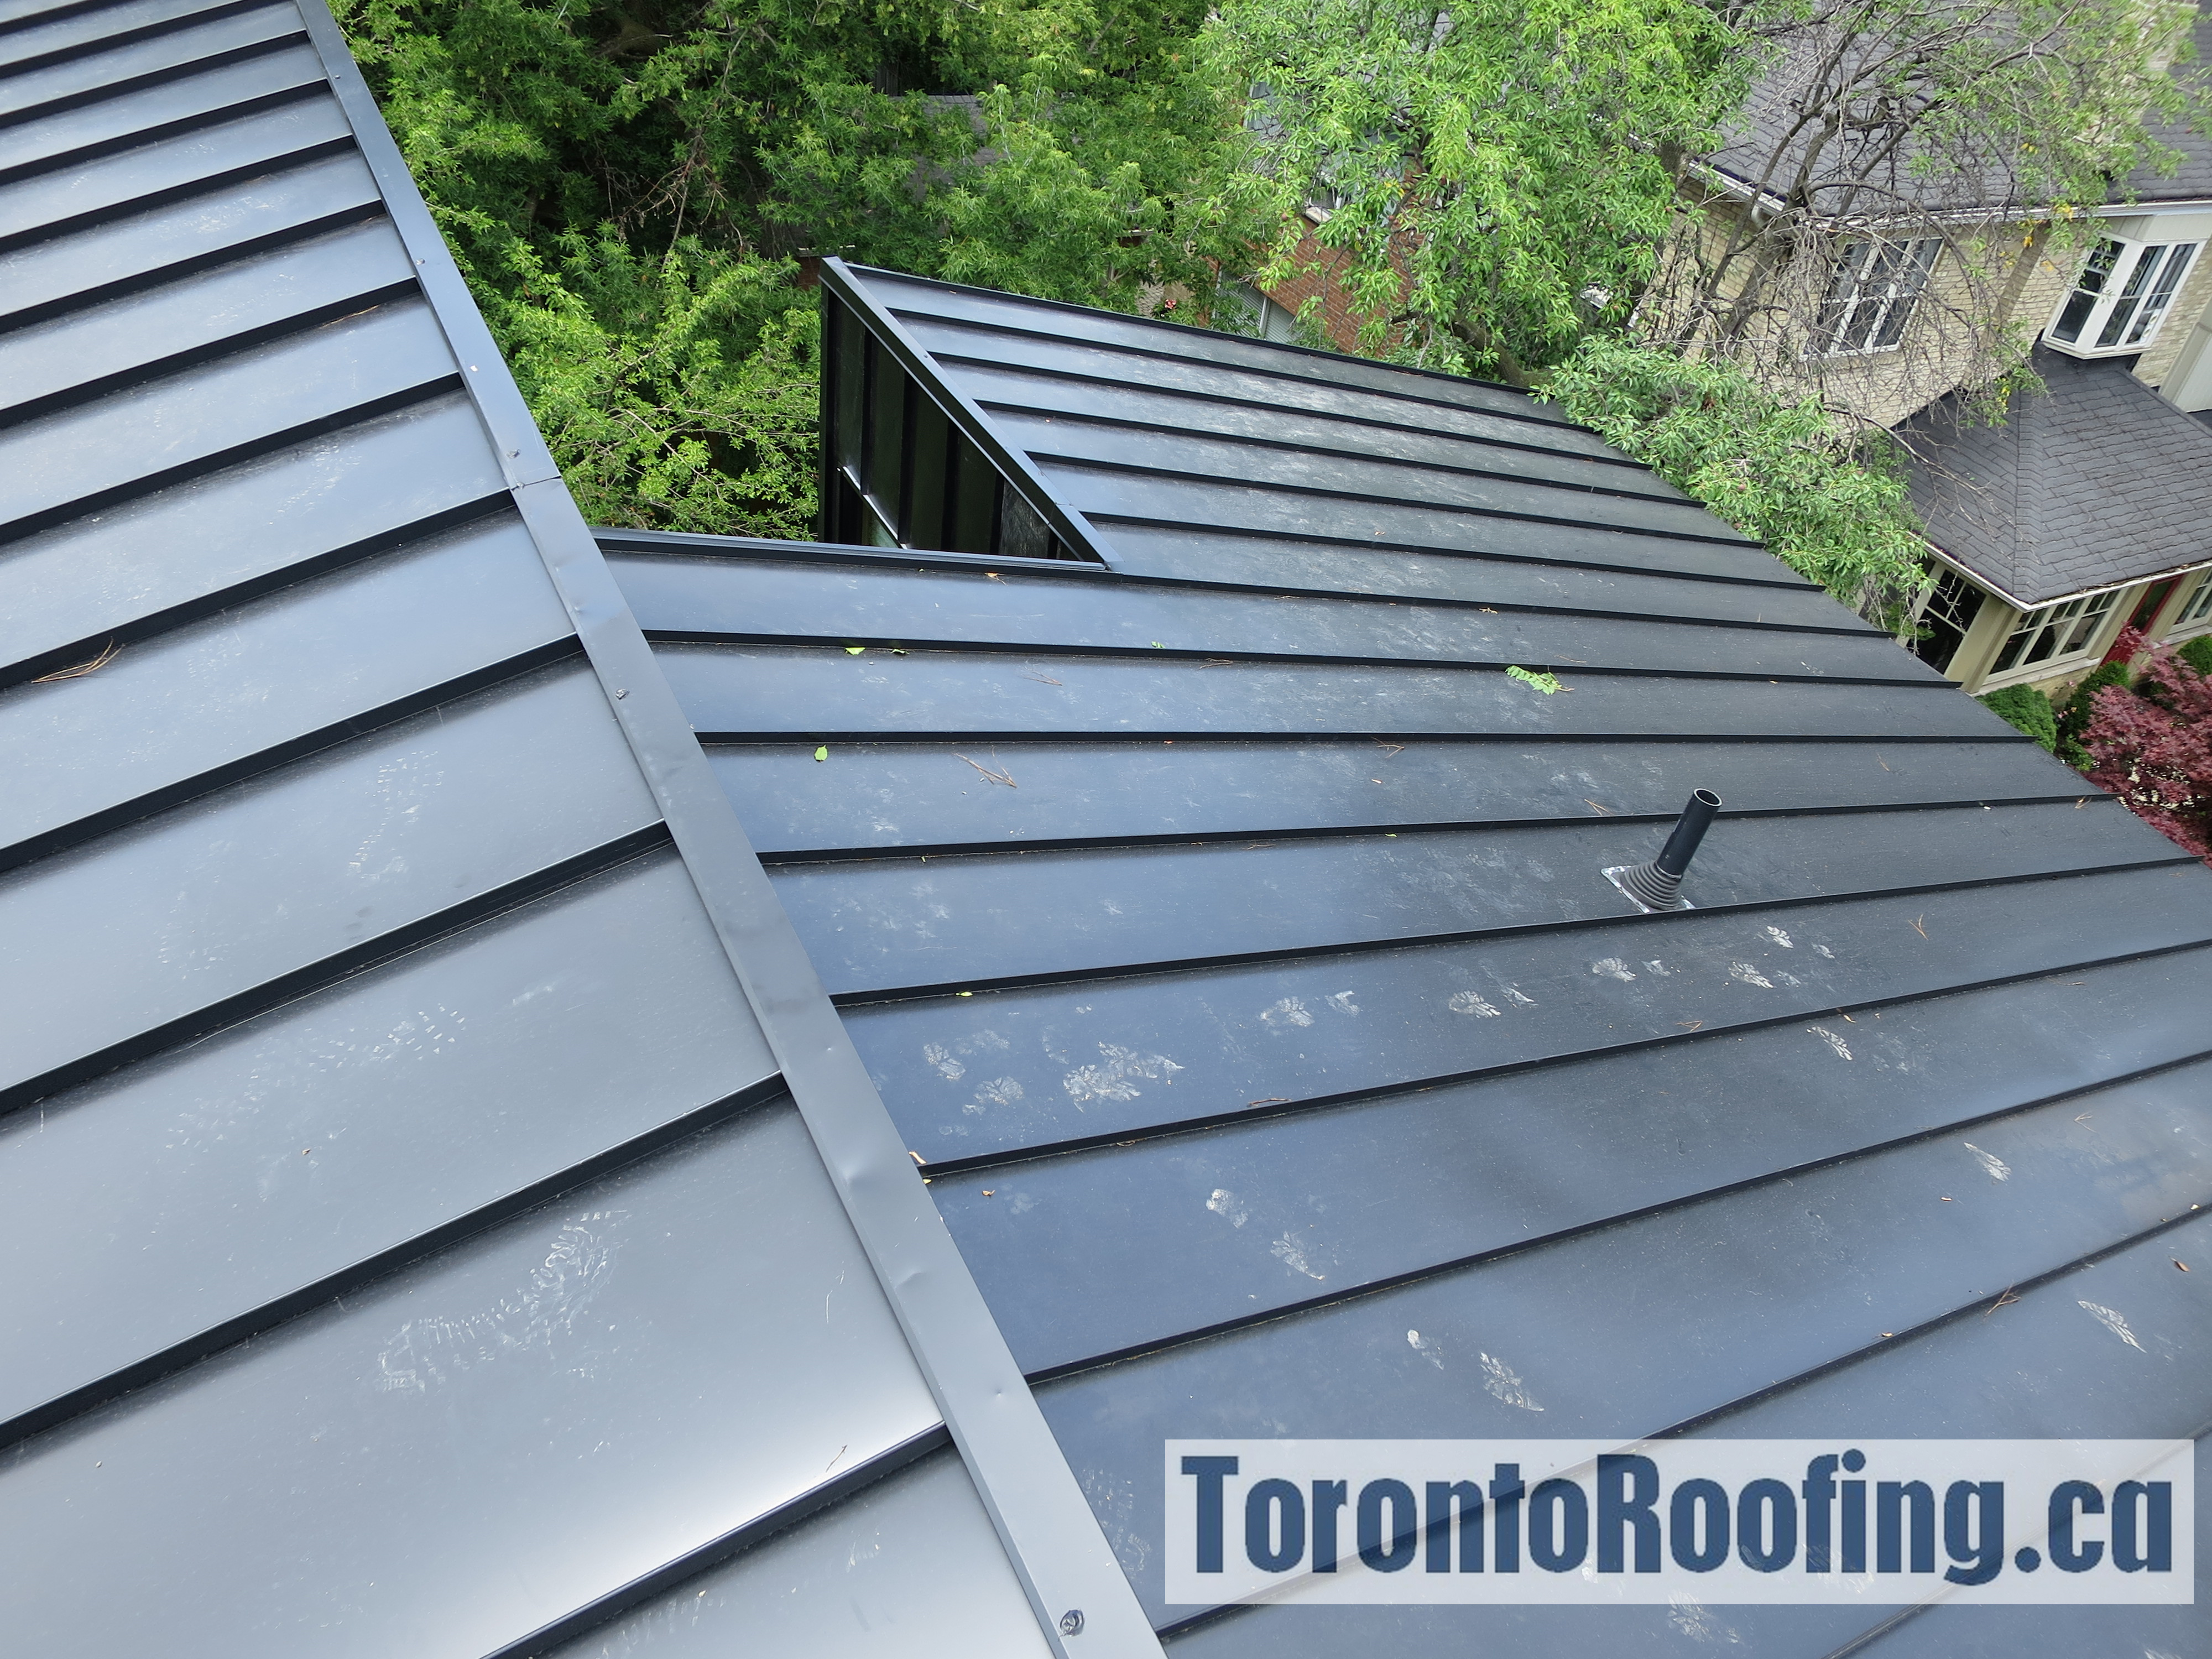 toronto-roofing-standing-seam-metal-roof-roofing-toronto-metal-roofing-roofing-contractor-9